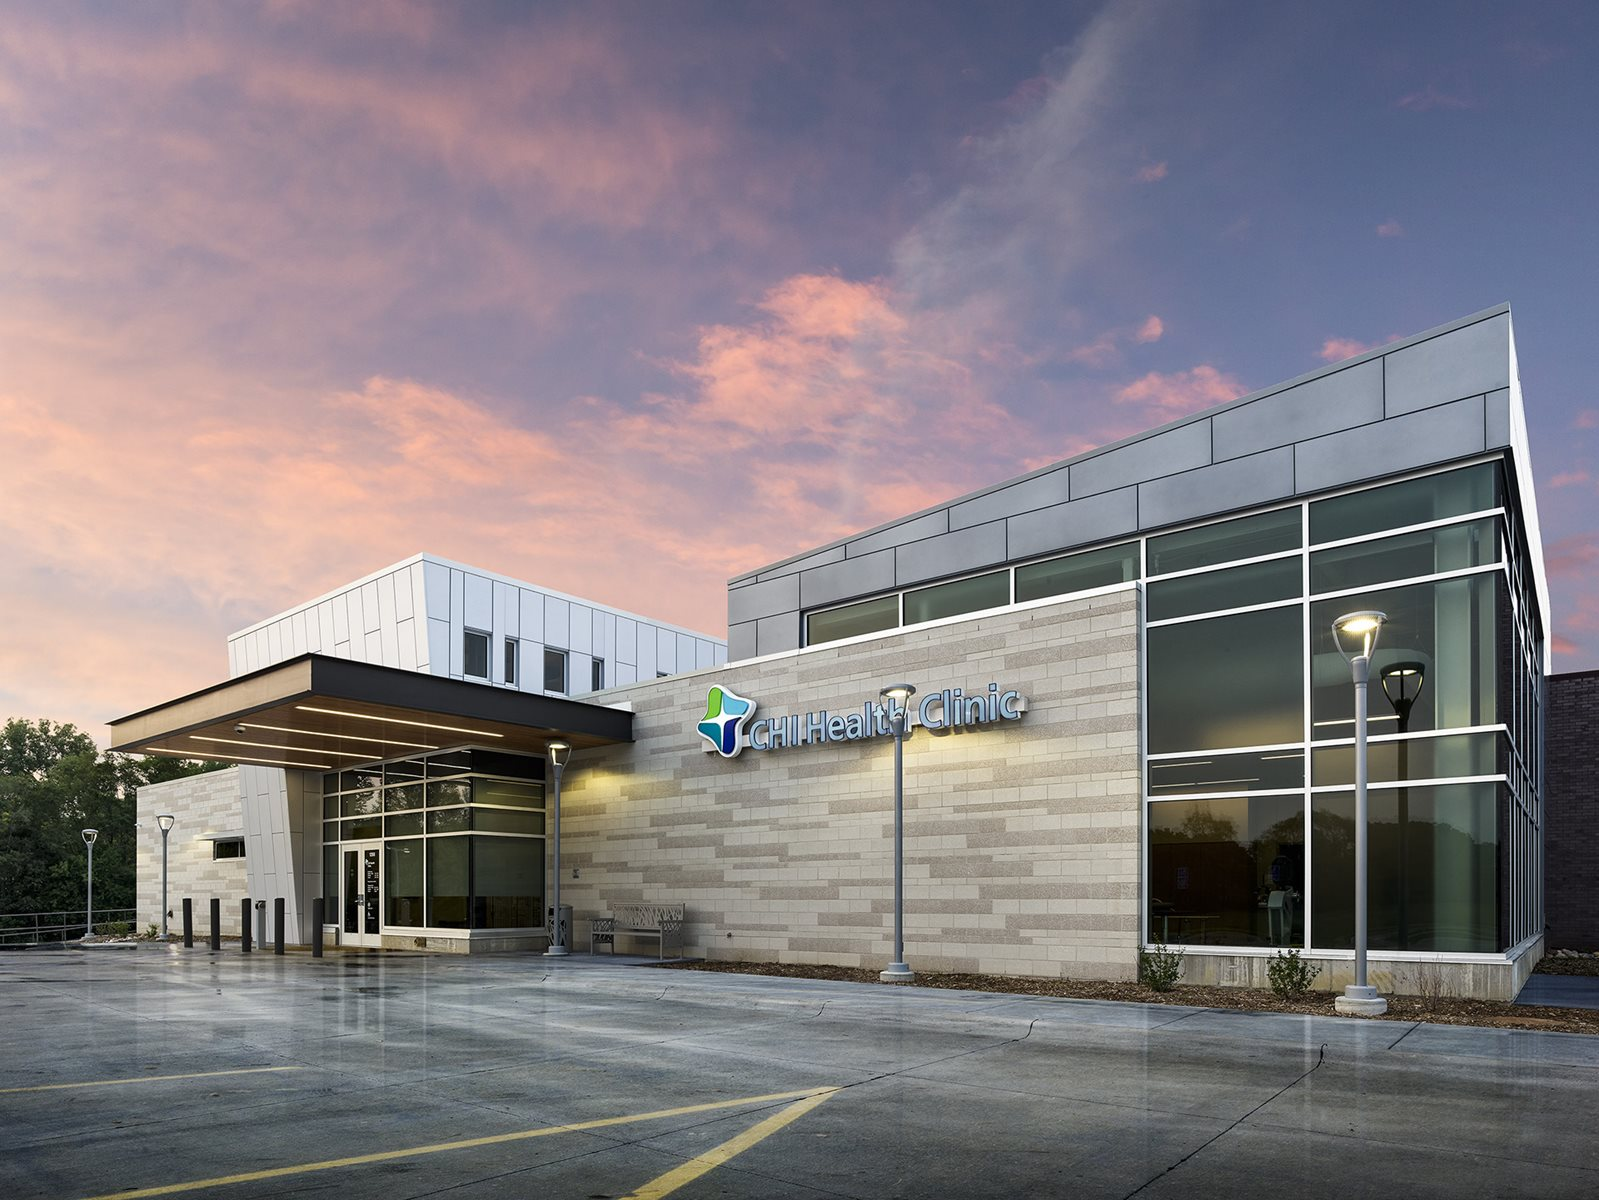 NexCore Announces Opening of CHI Health Clinic Millard in the SW Omaha metro